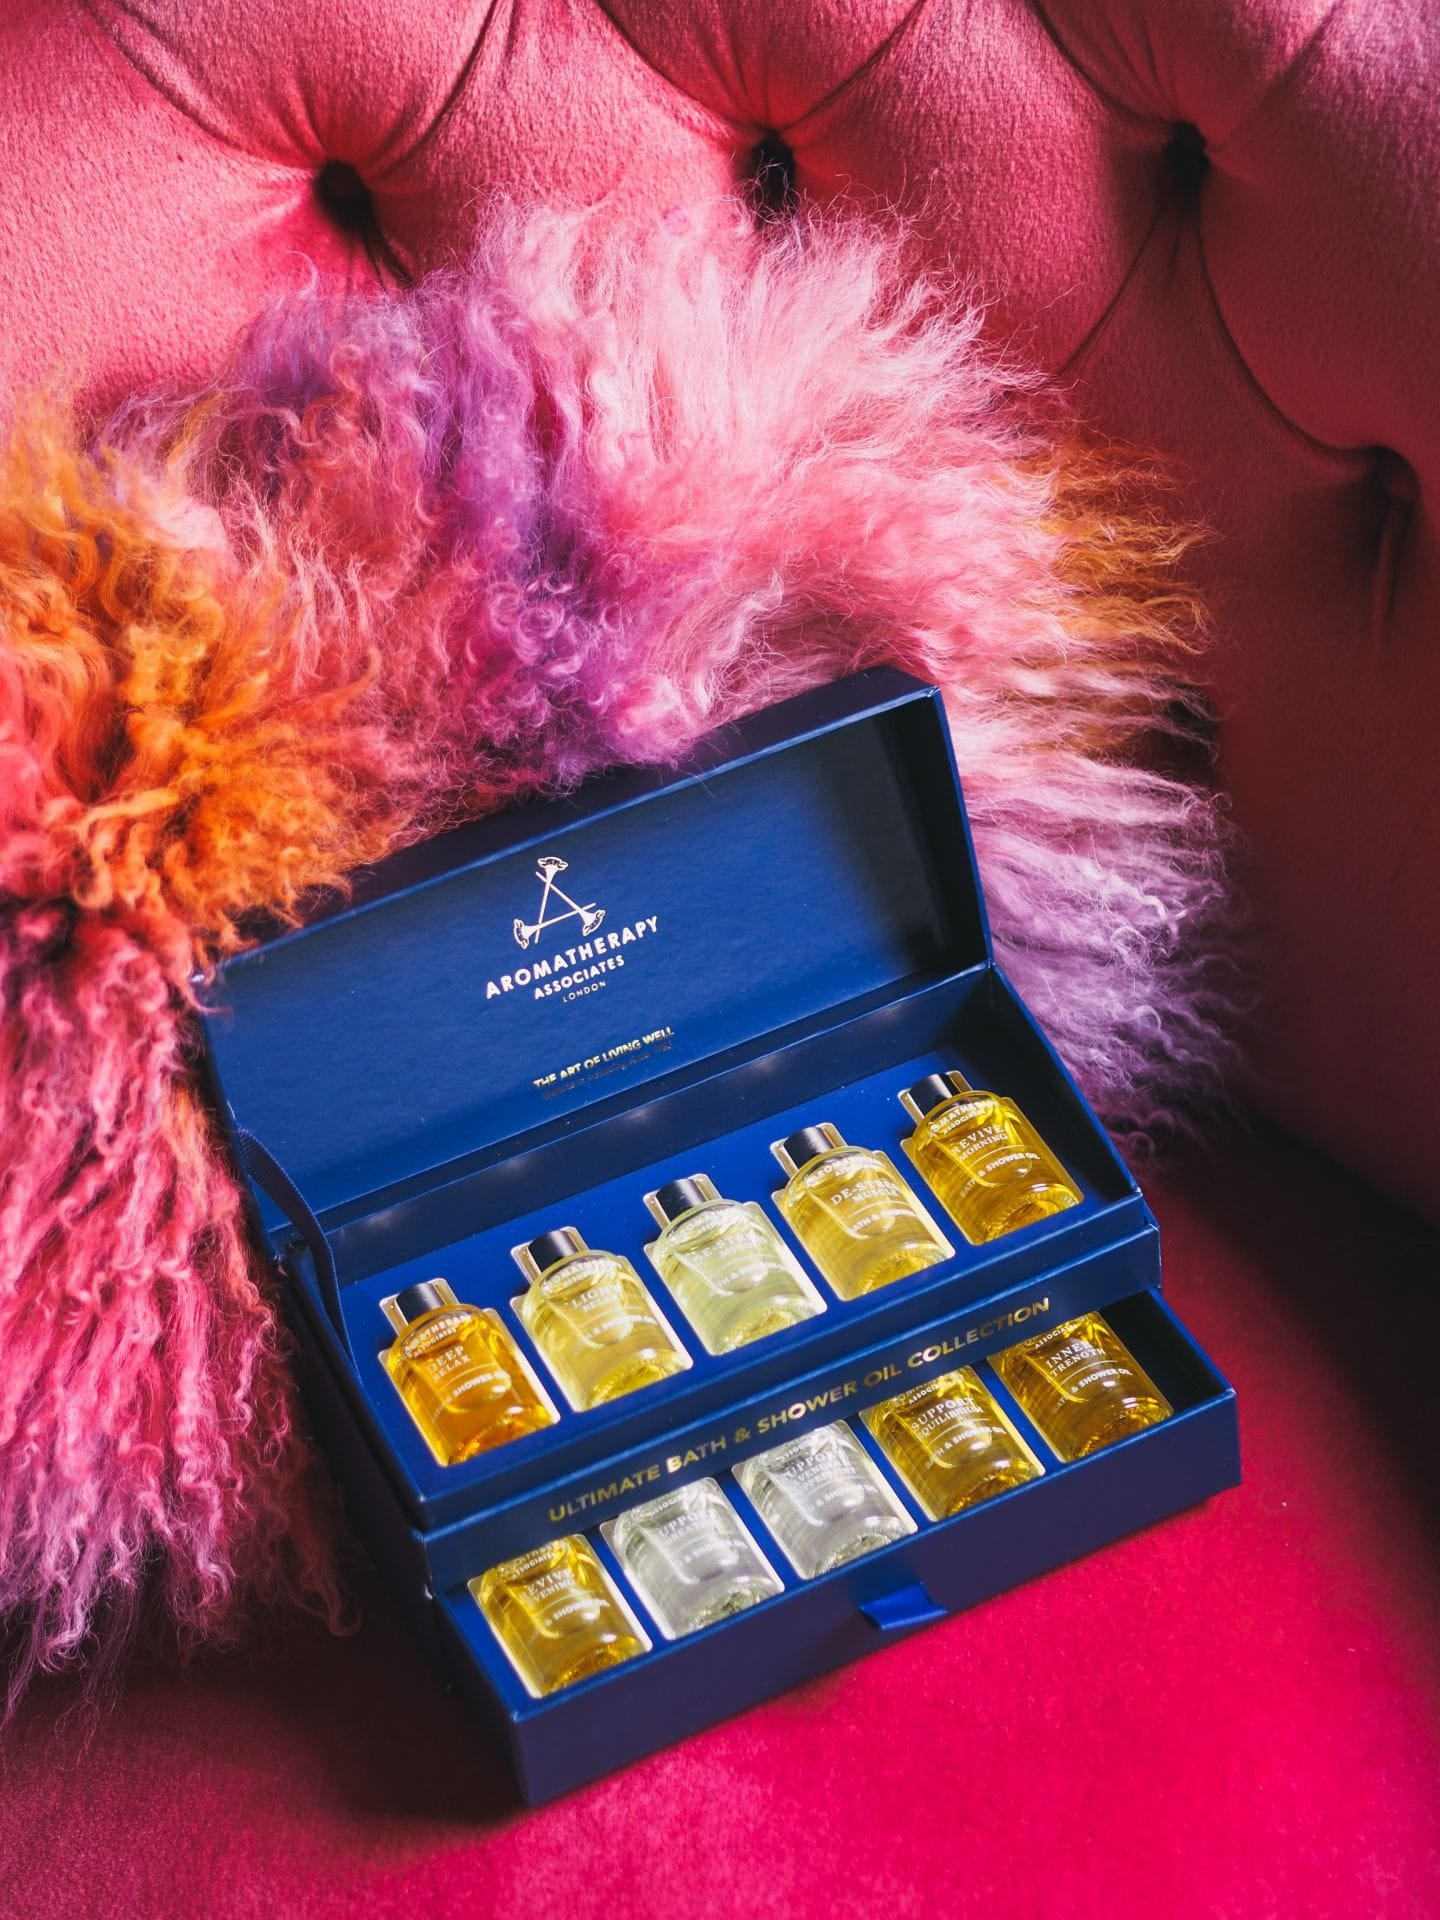 Christmas gift set aromatherpy assosicates bath and shower gel set